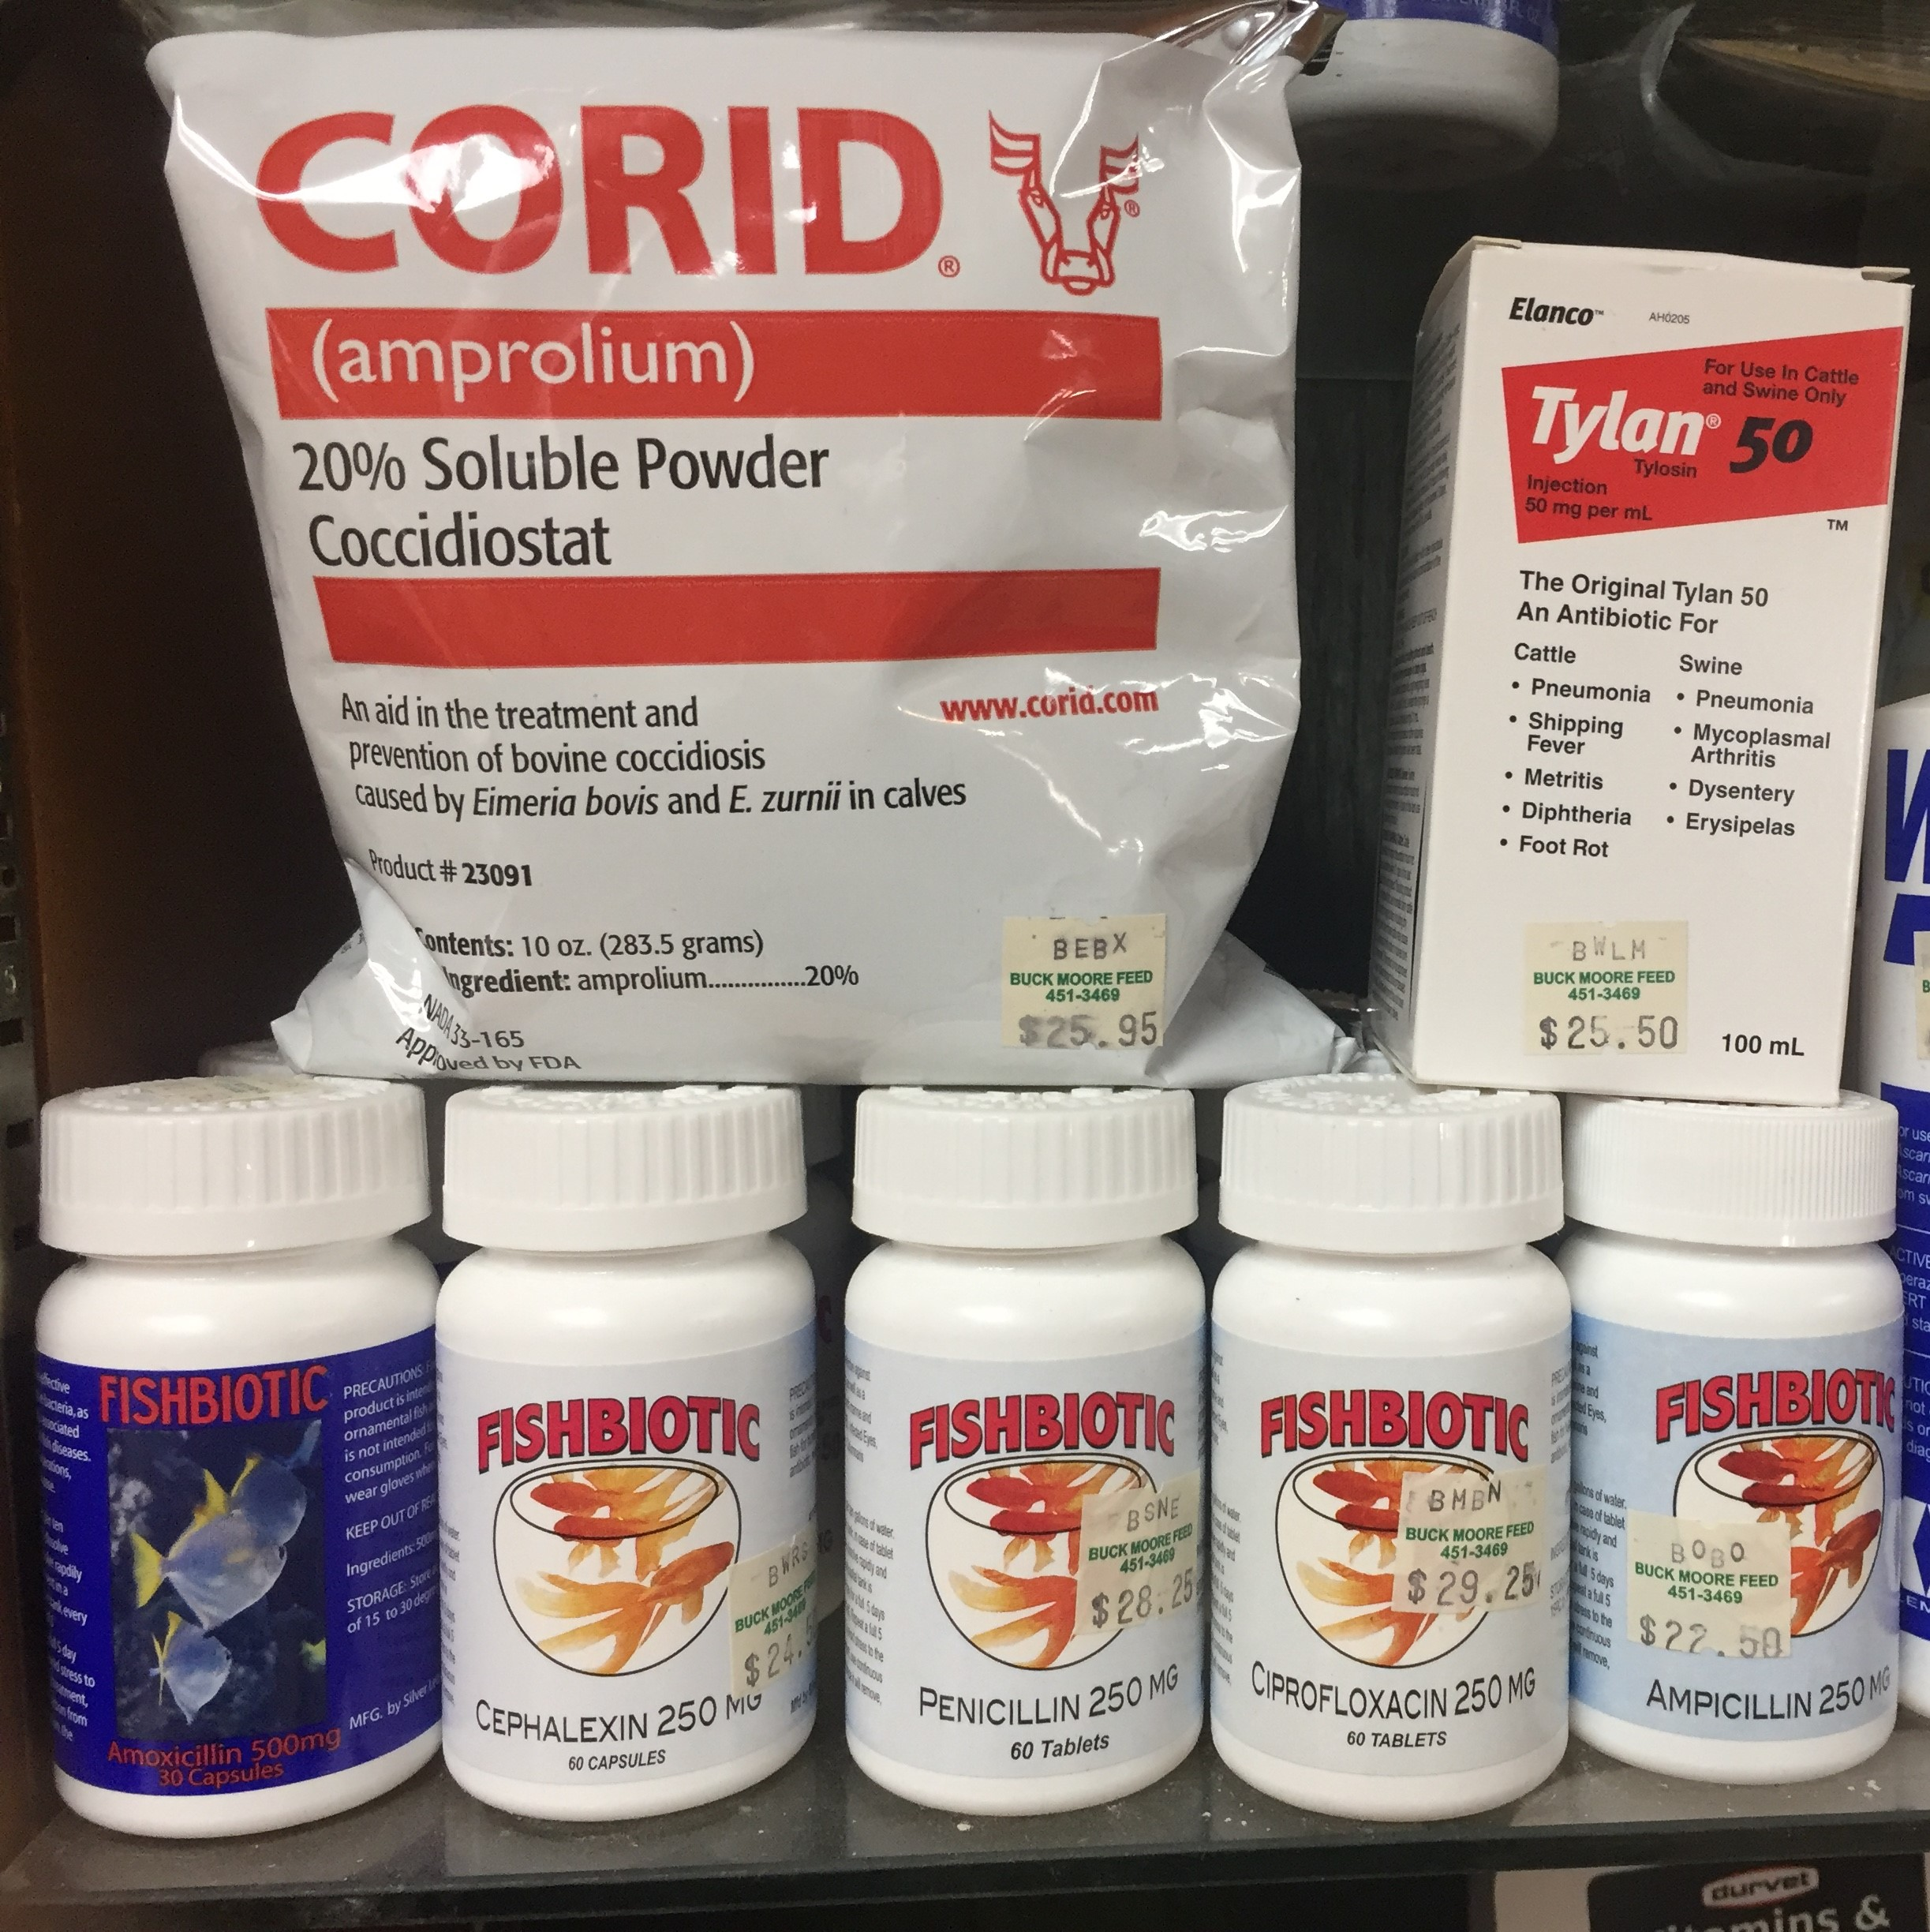 We also carry antibiotics and medications for animals other than chickens, which are not affected by the Veterinary Feed Directive, however, we can't suggest you use any product other than as labeled and intended..